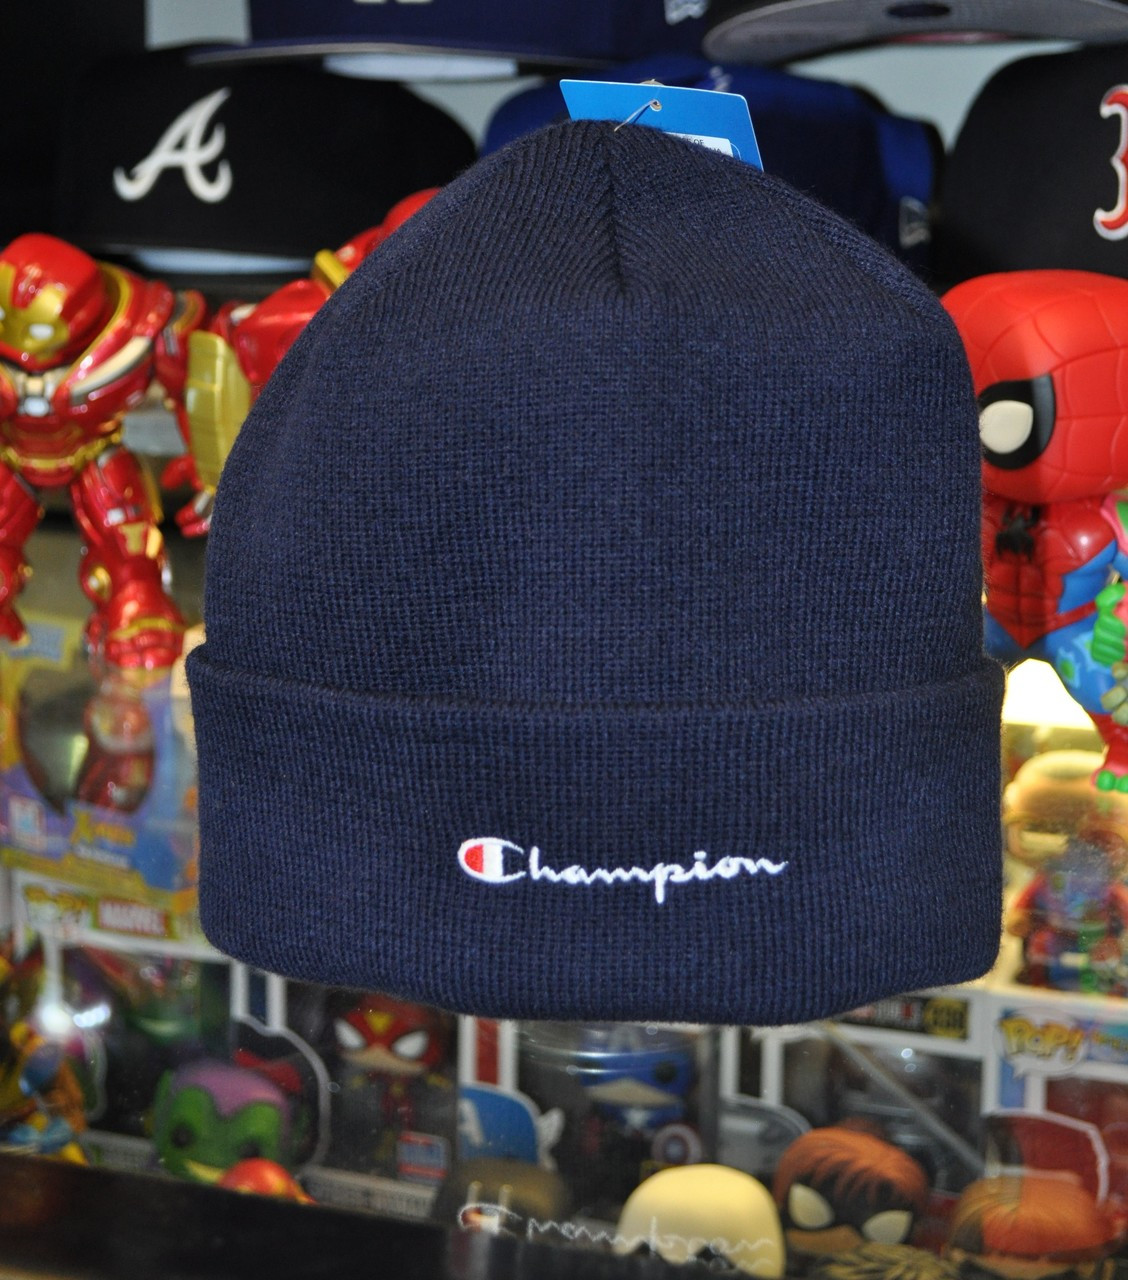 3e46000c0ce6f Champion Beanie Script Navy - Authentic Champion Clothing now at KCT ...